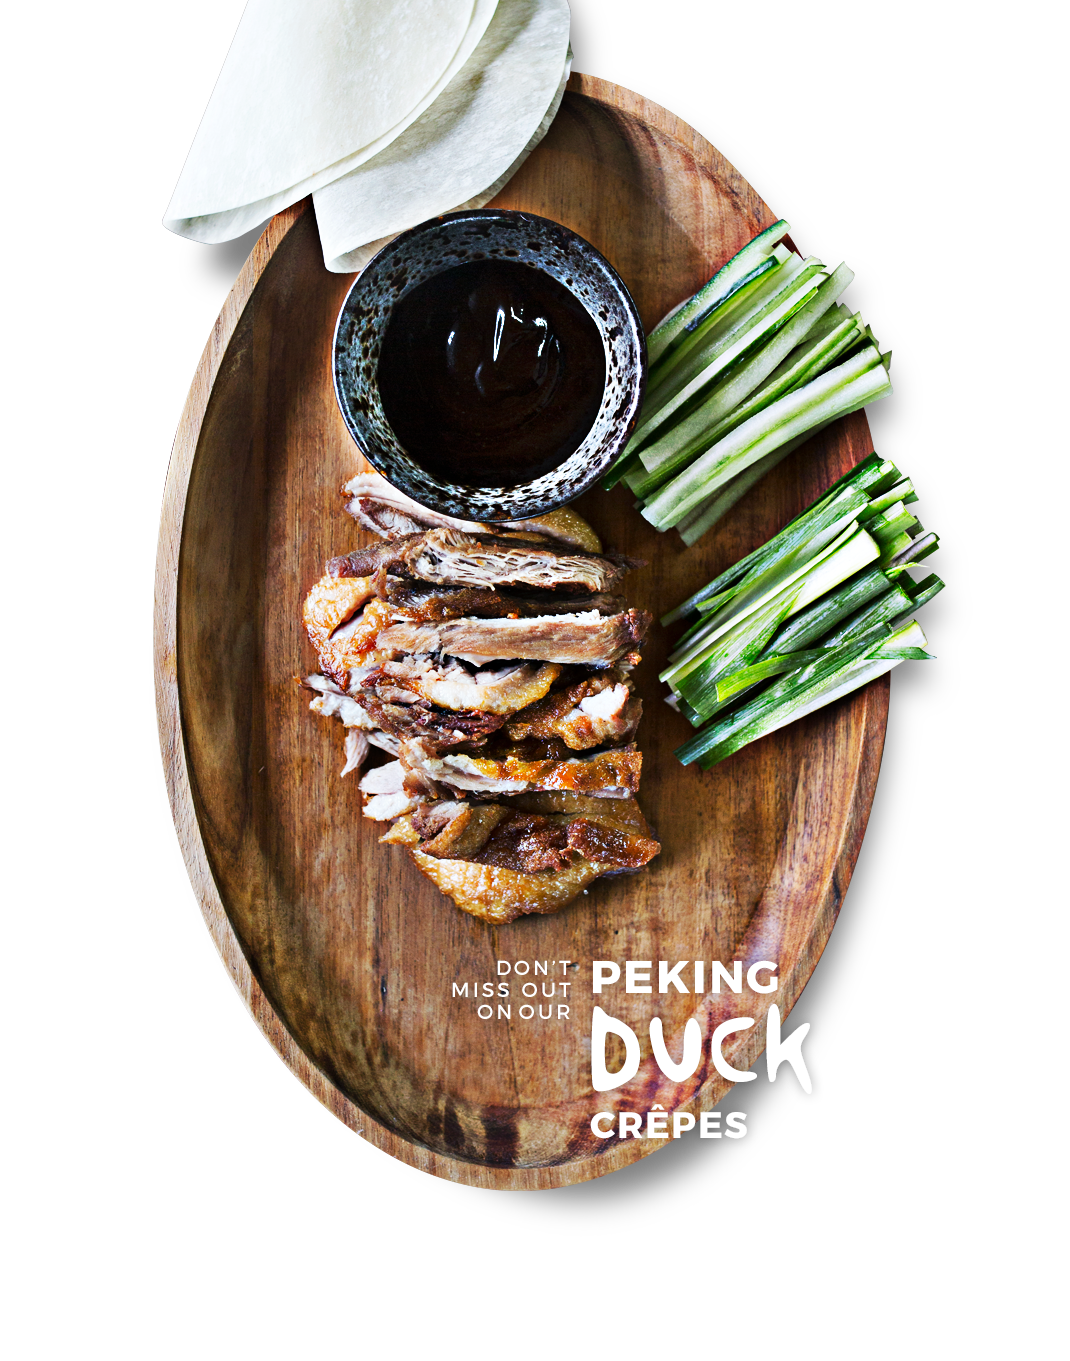 Try our Peking duck crepes!